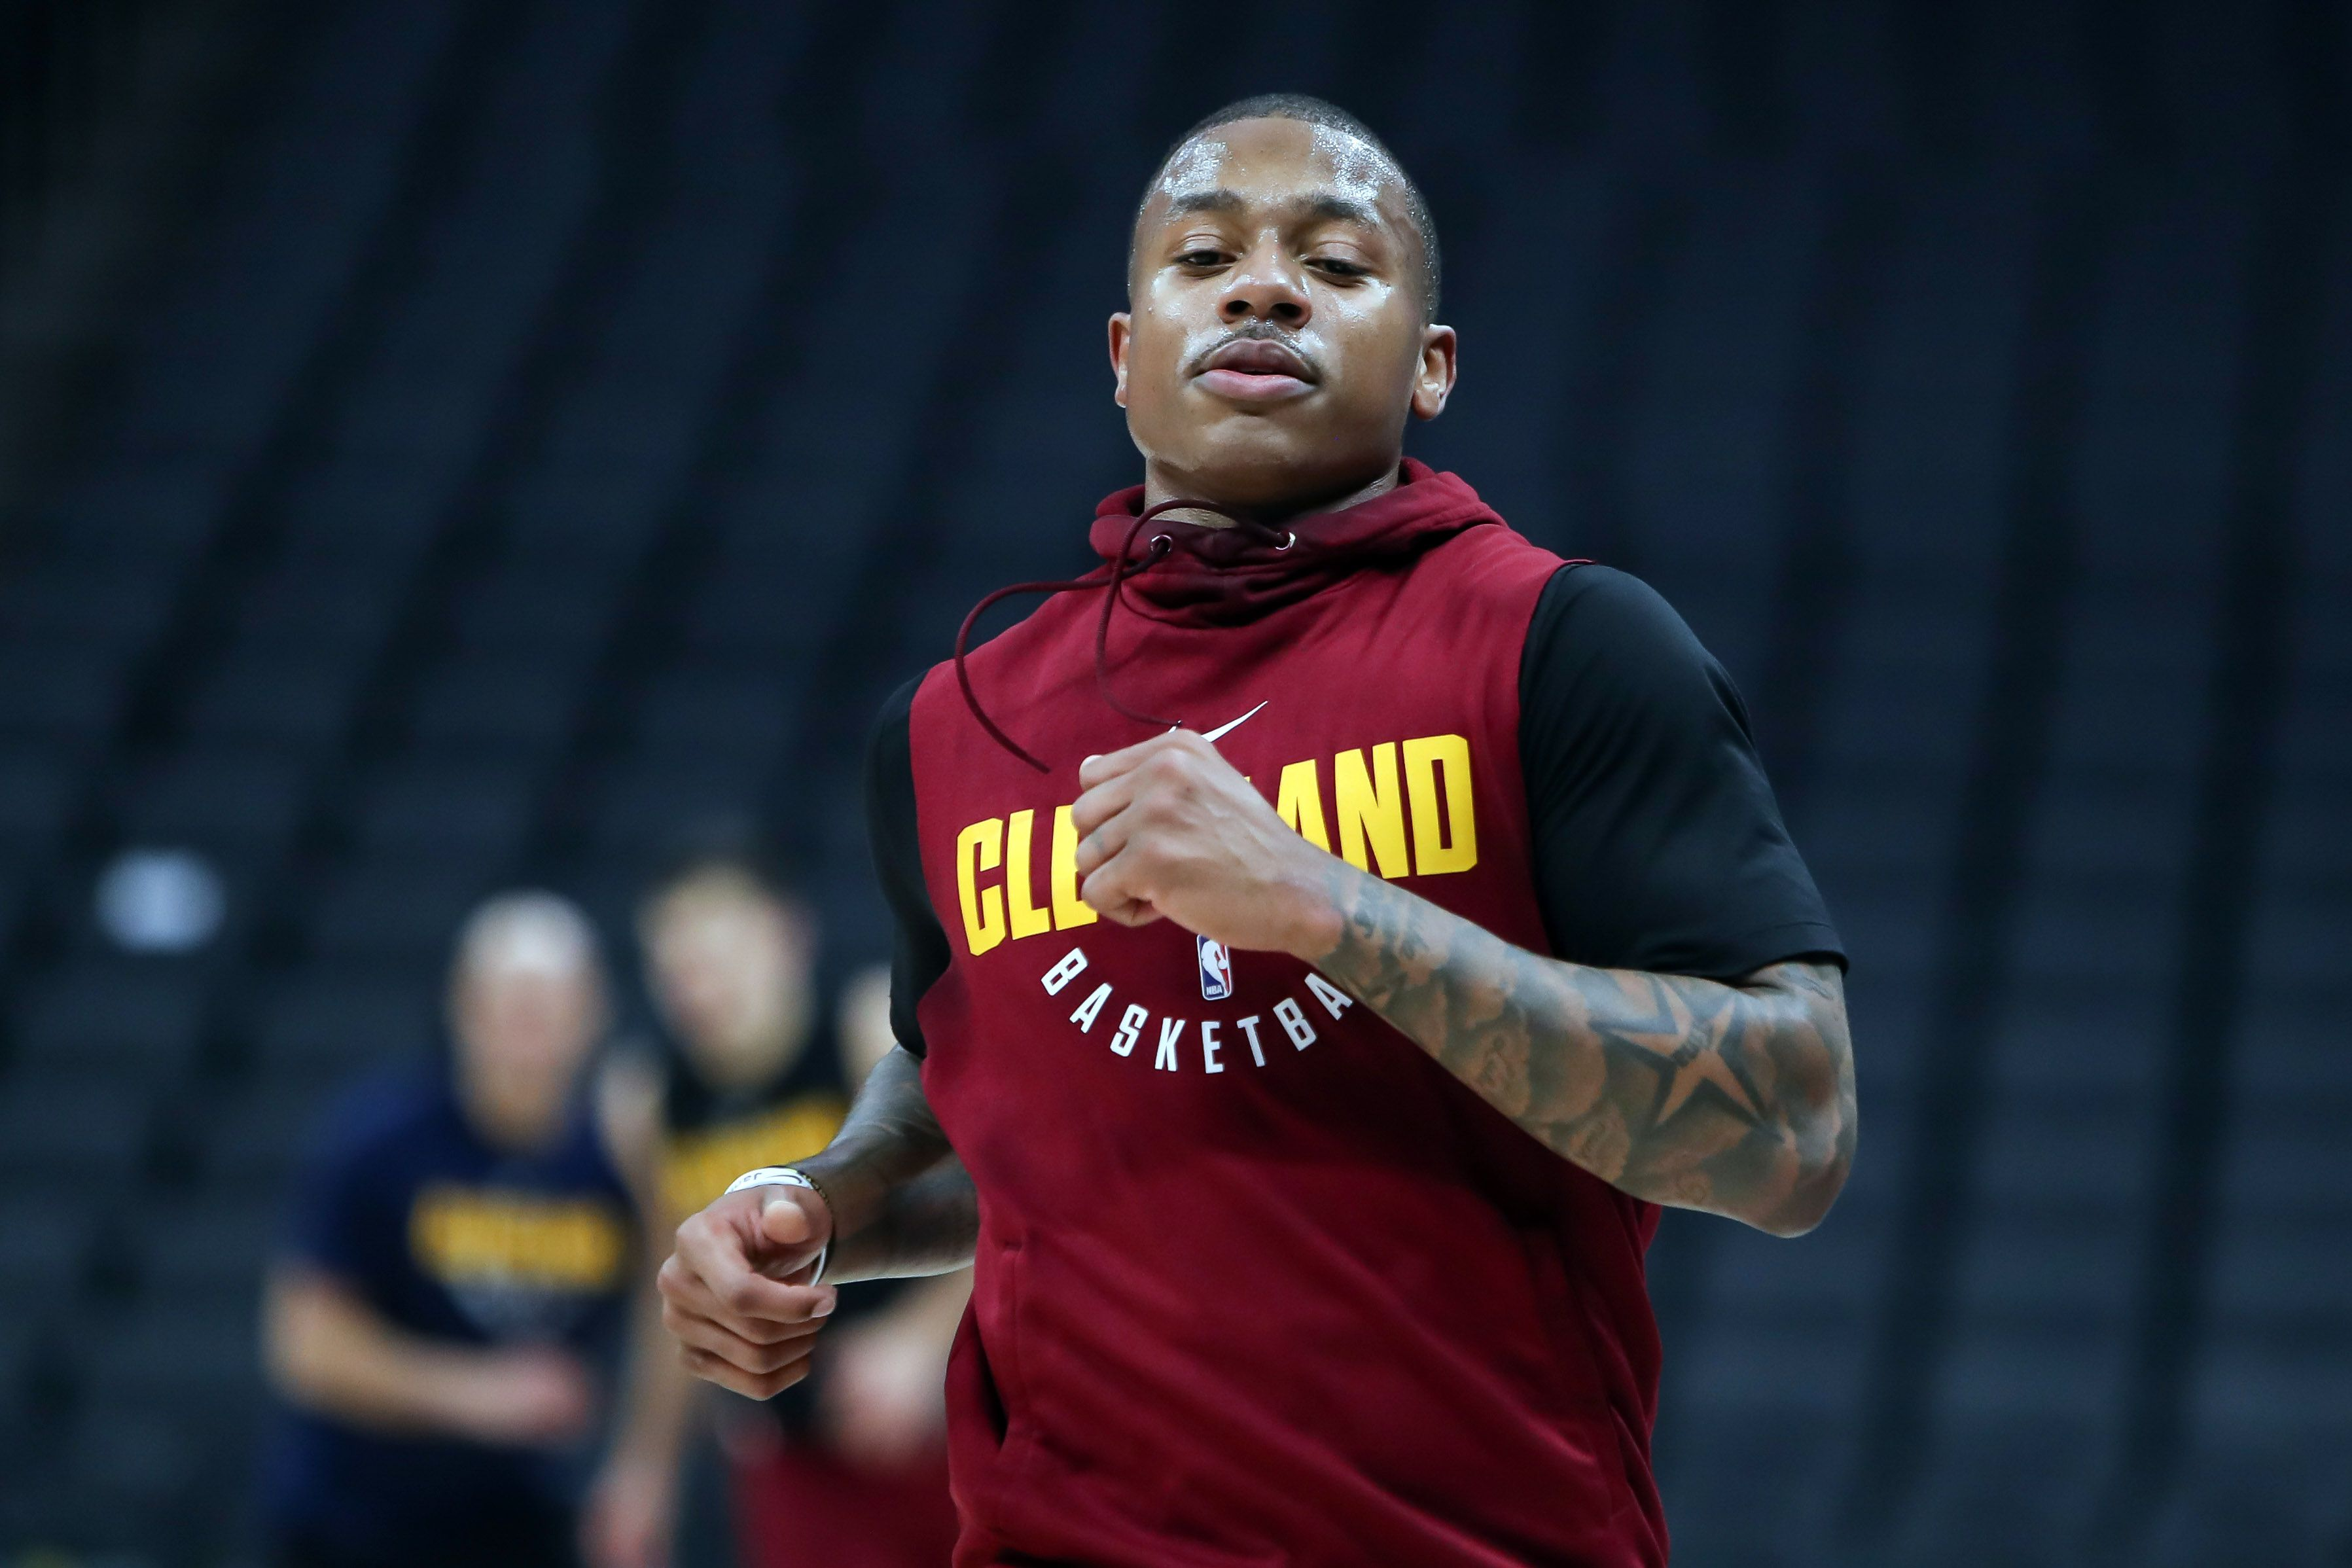 Isaiah Thomas to make Cavaliers debut Tuesday vs. Trail Blazers